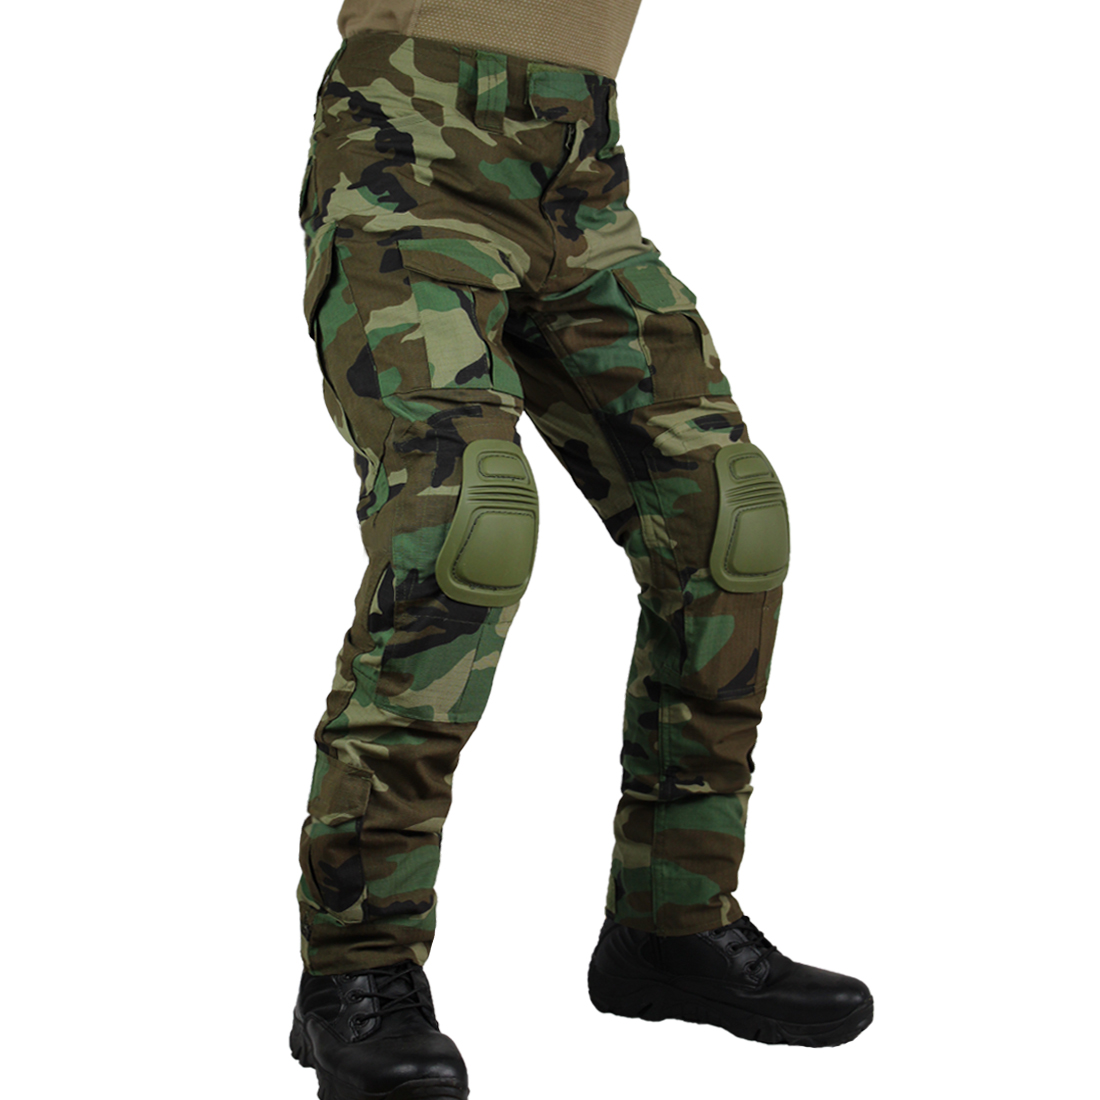 Zuoxiangru Men's Multicam Tactical Pants Multi-Pockets Military Camo Outdoor Airsoft Combat Hunting Pants With Knee Pads